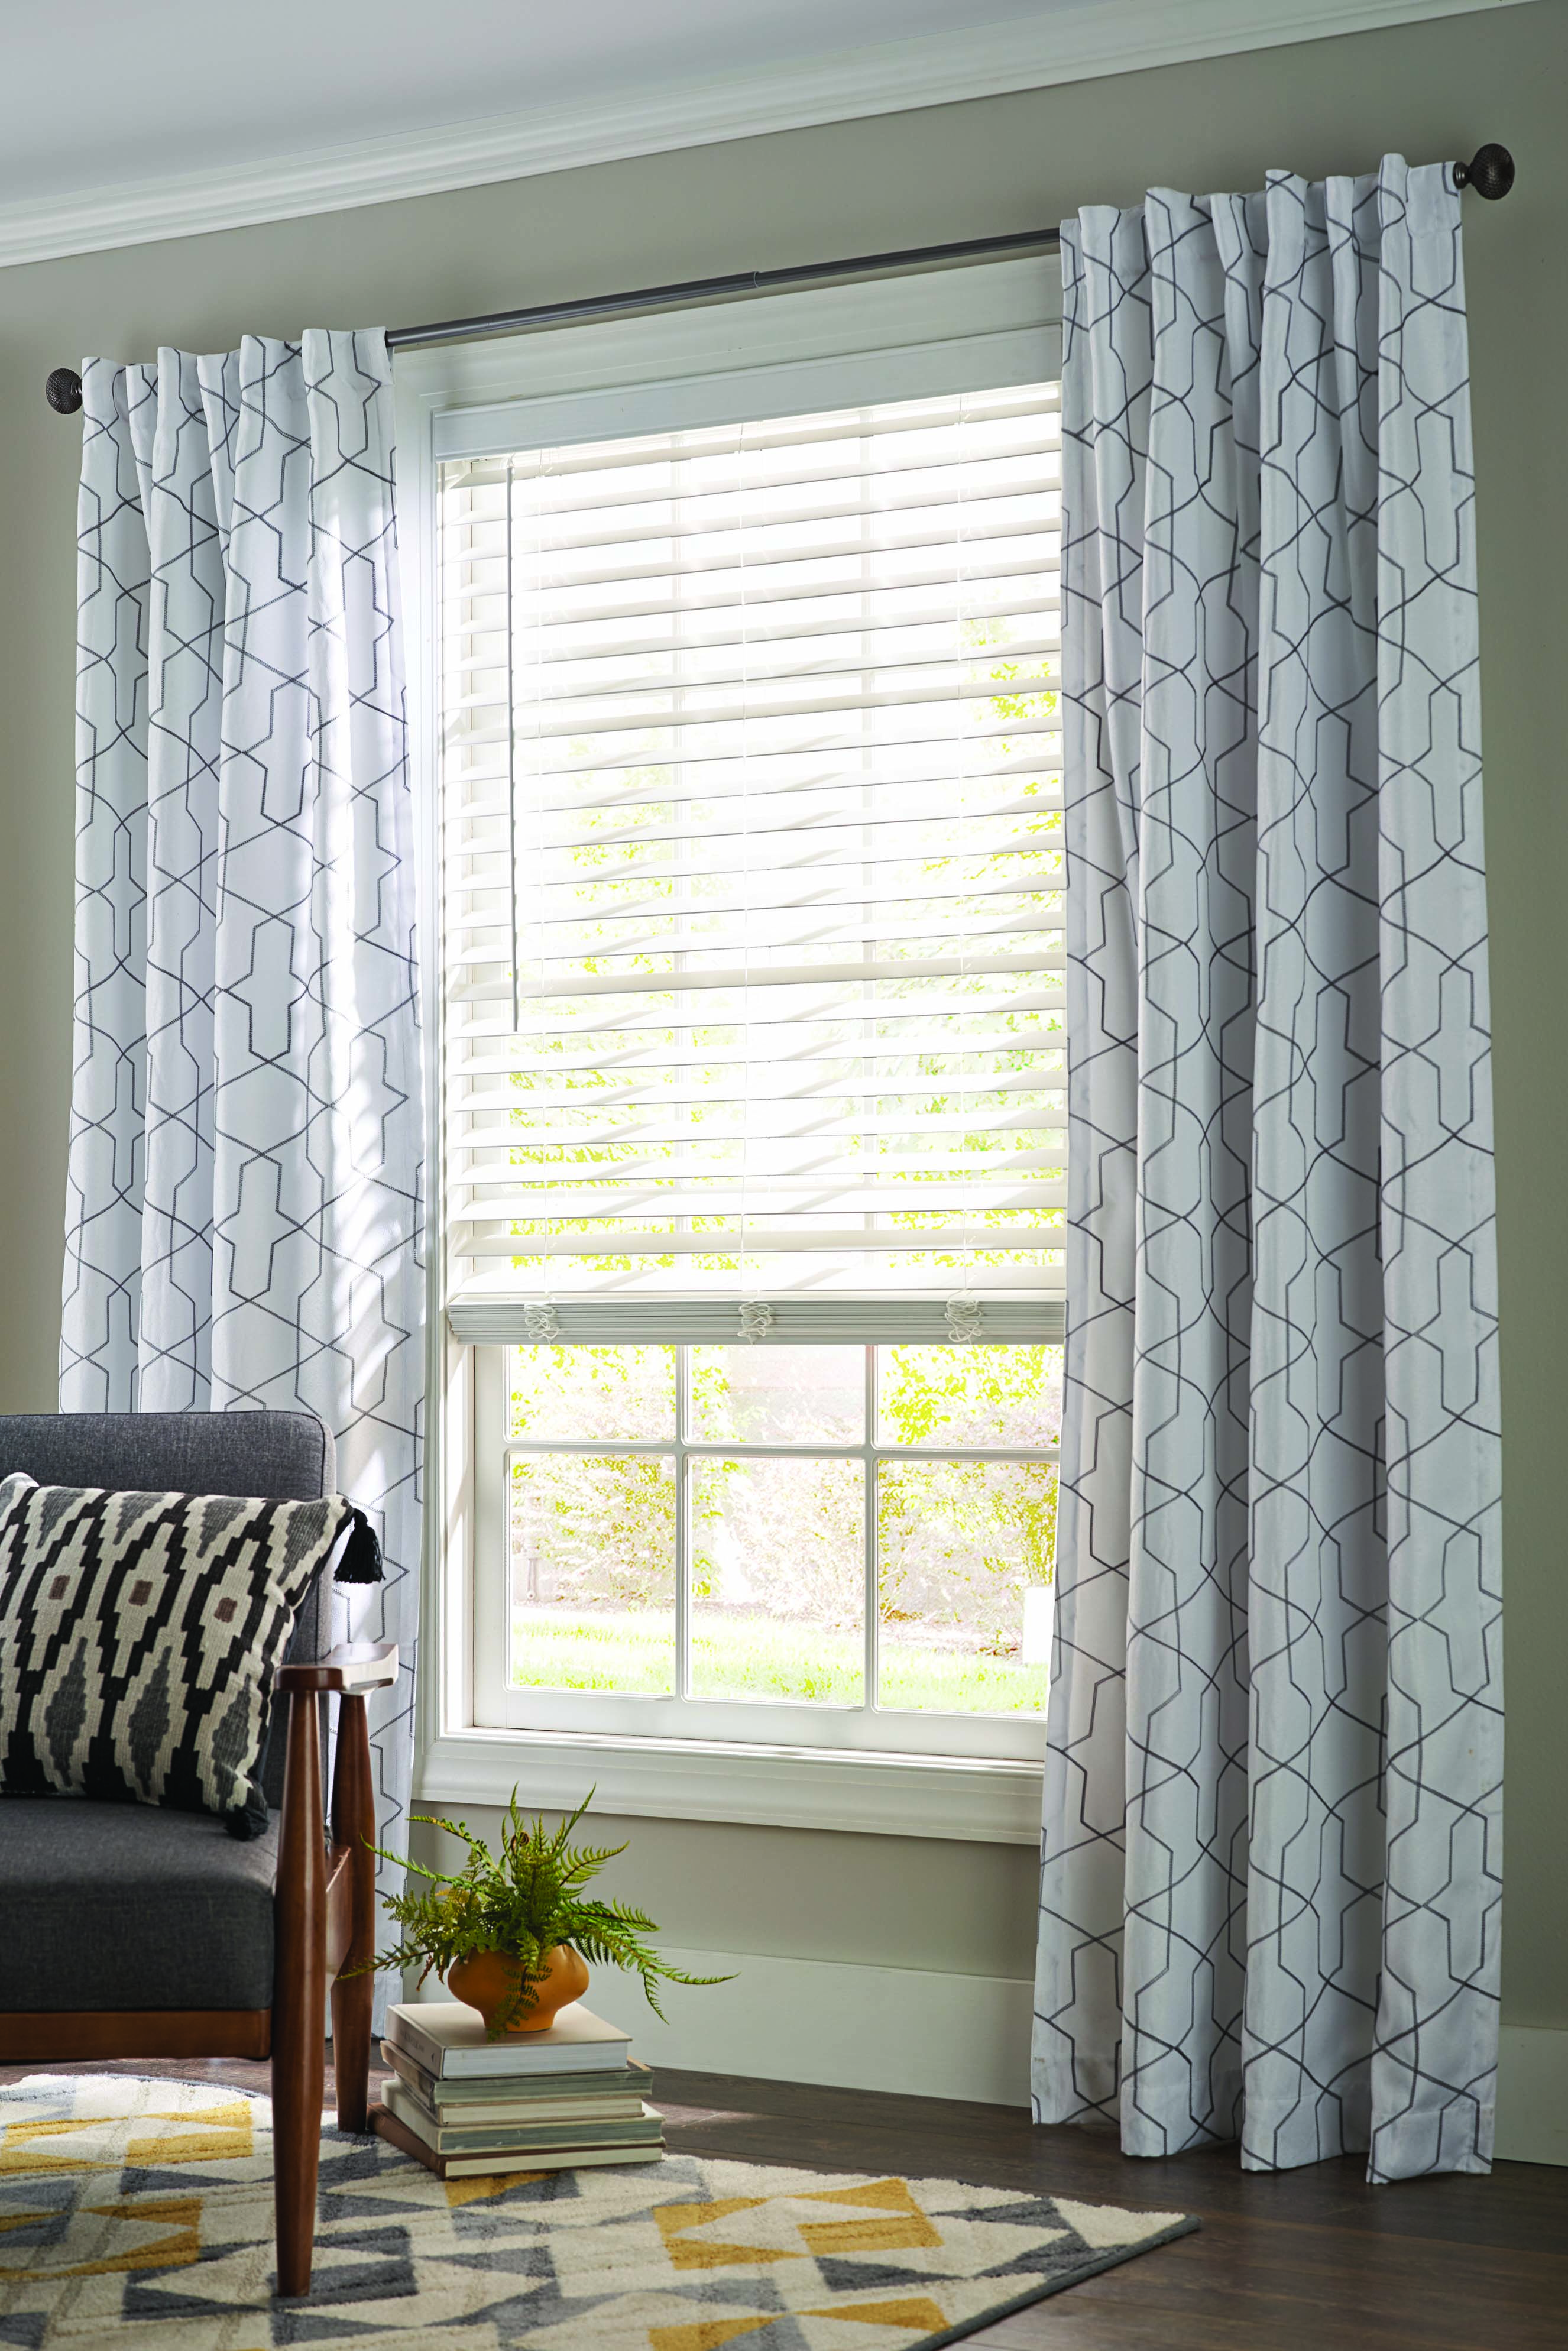 bfcf1df1467a76952da57392fba7344c - Better Homes And Gardens Gray Pleat Shade